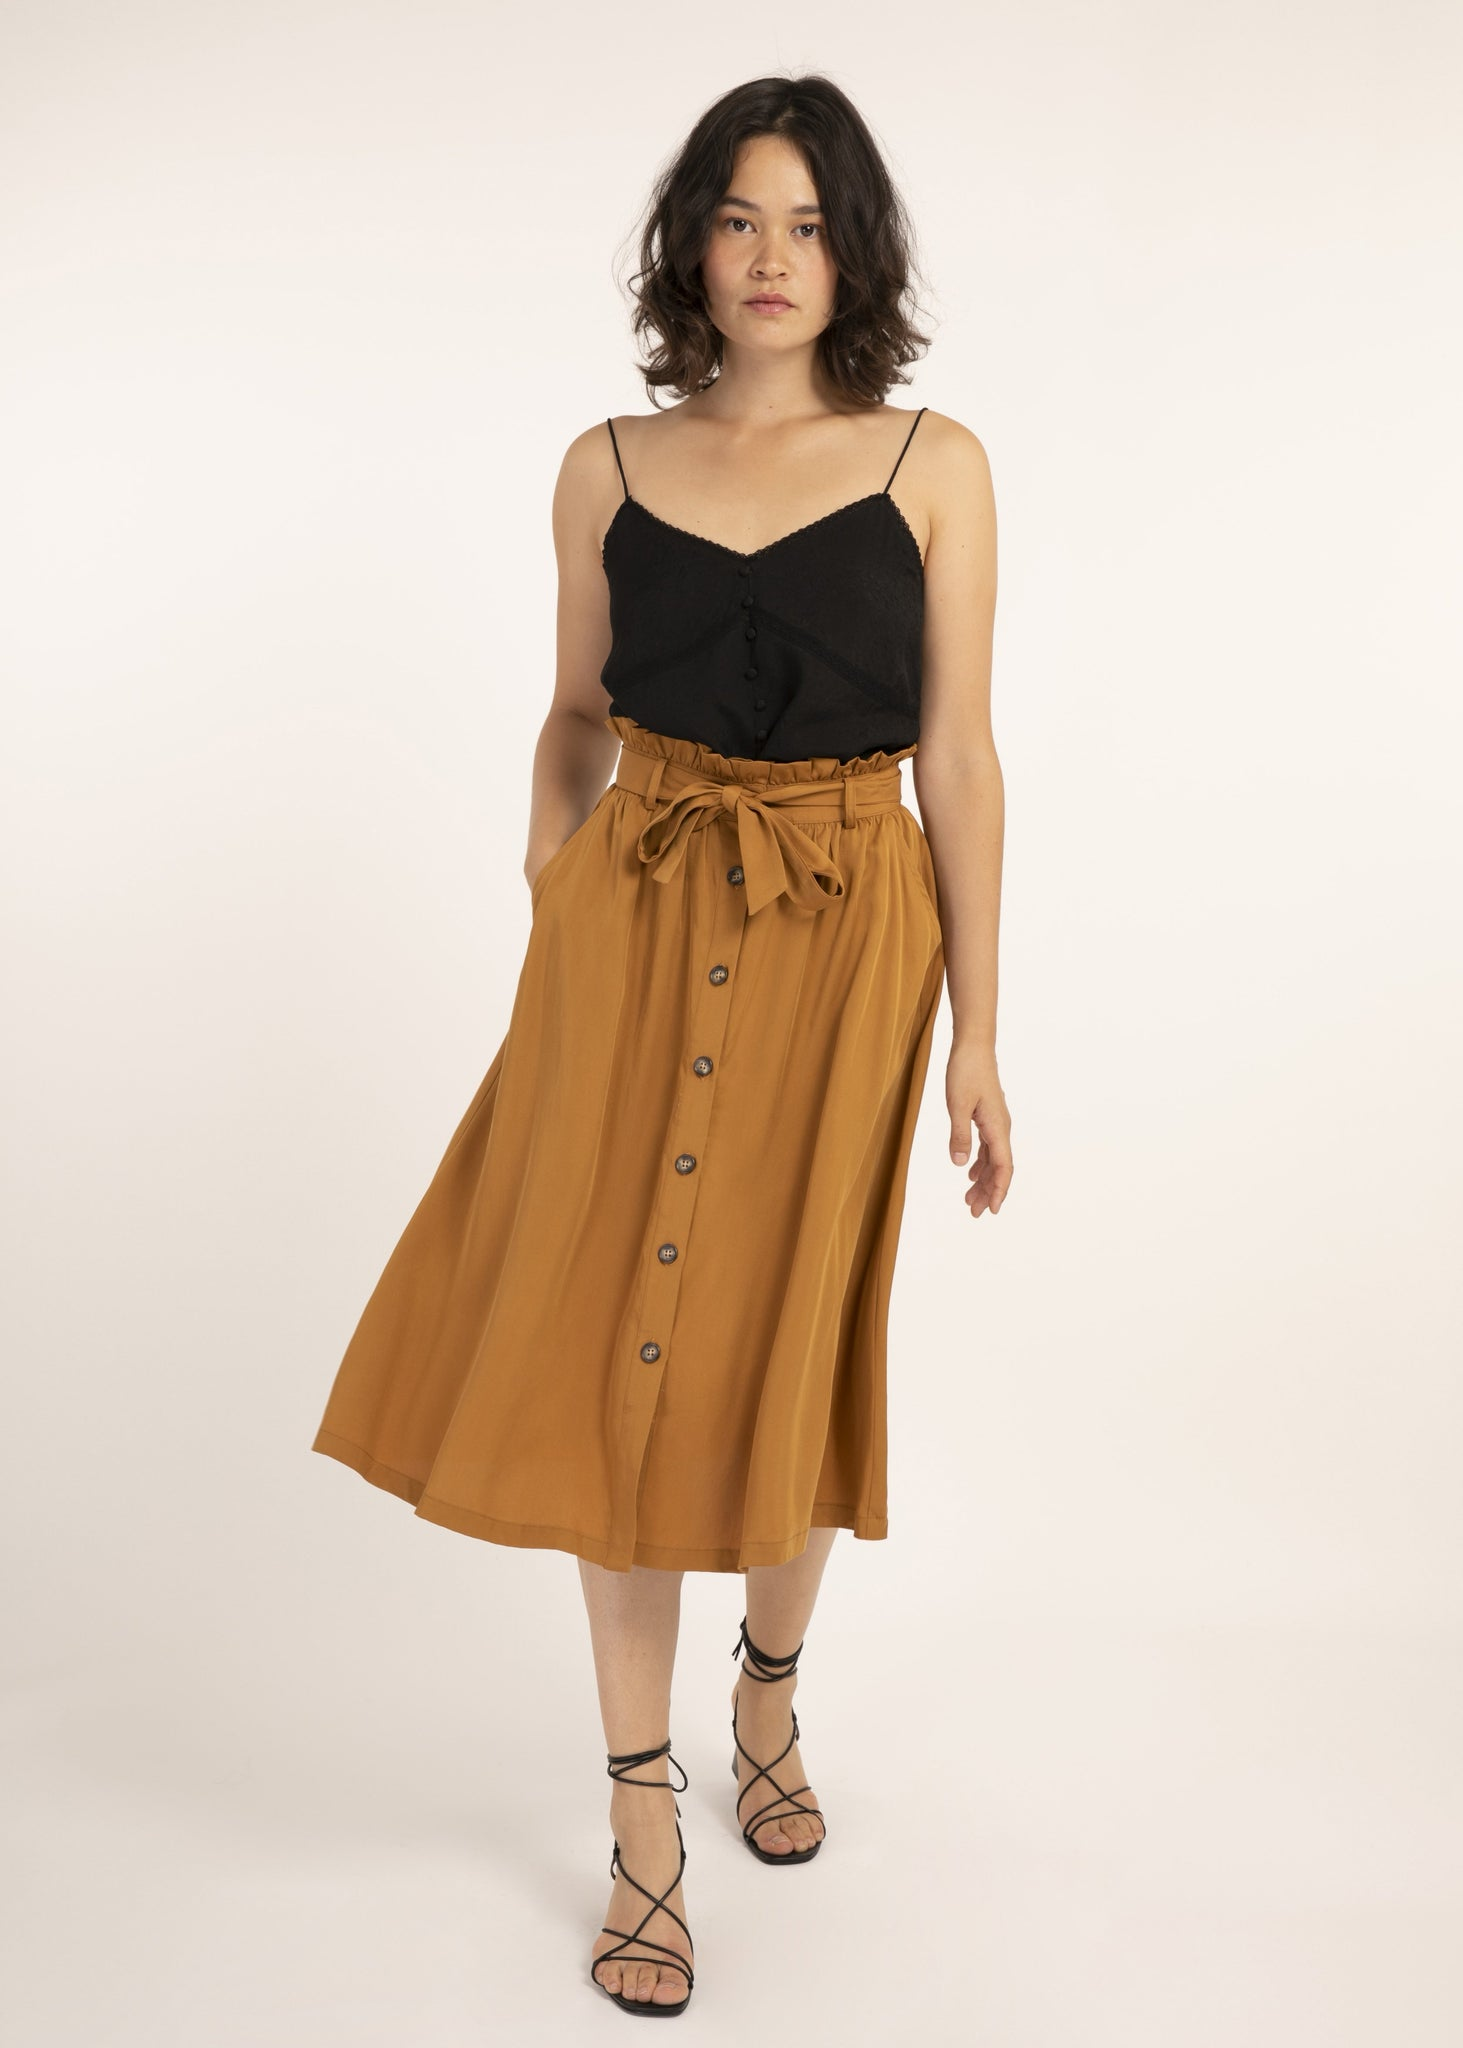 Frnch Ece skirt ocre F11415